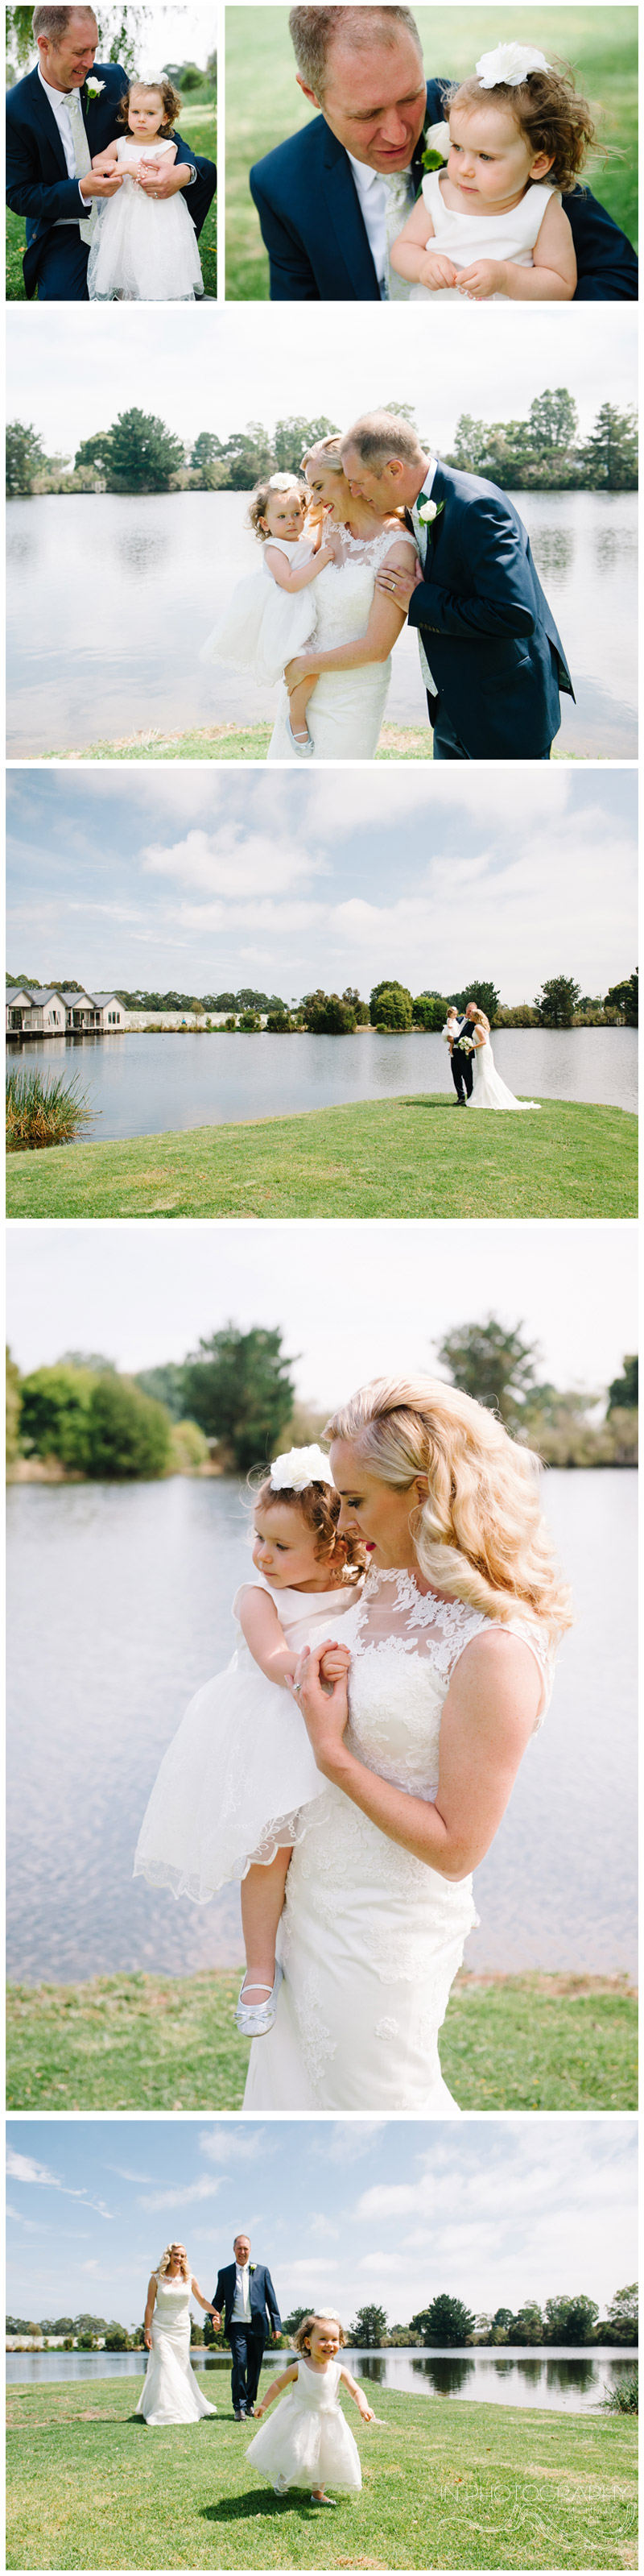 bride and groom images at Stillwater at Crittenden